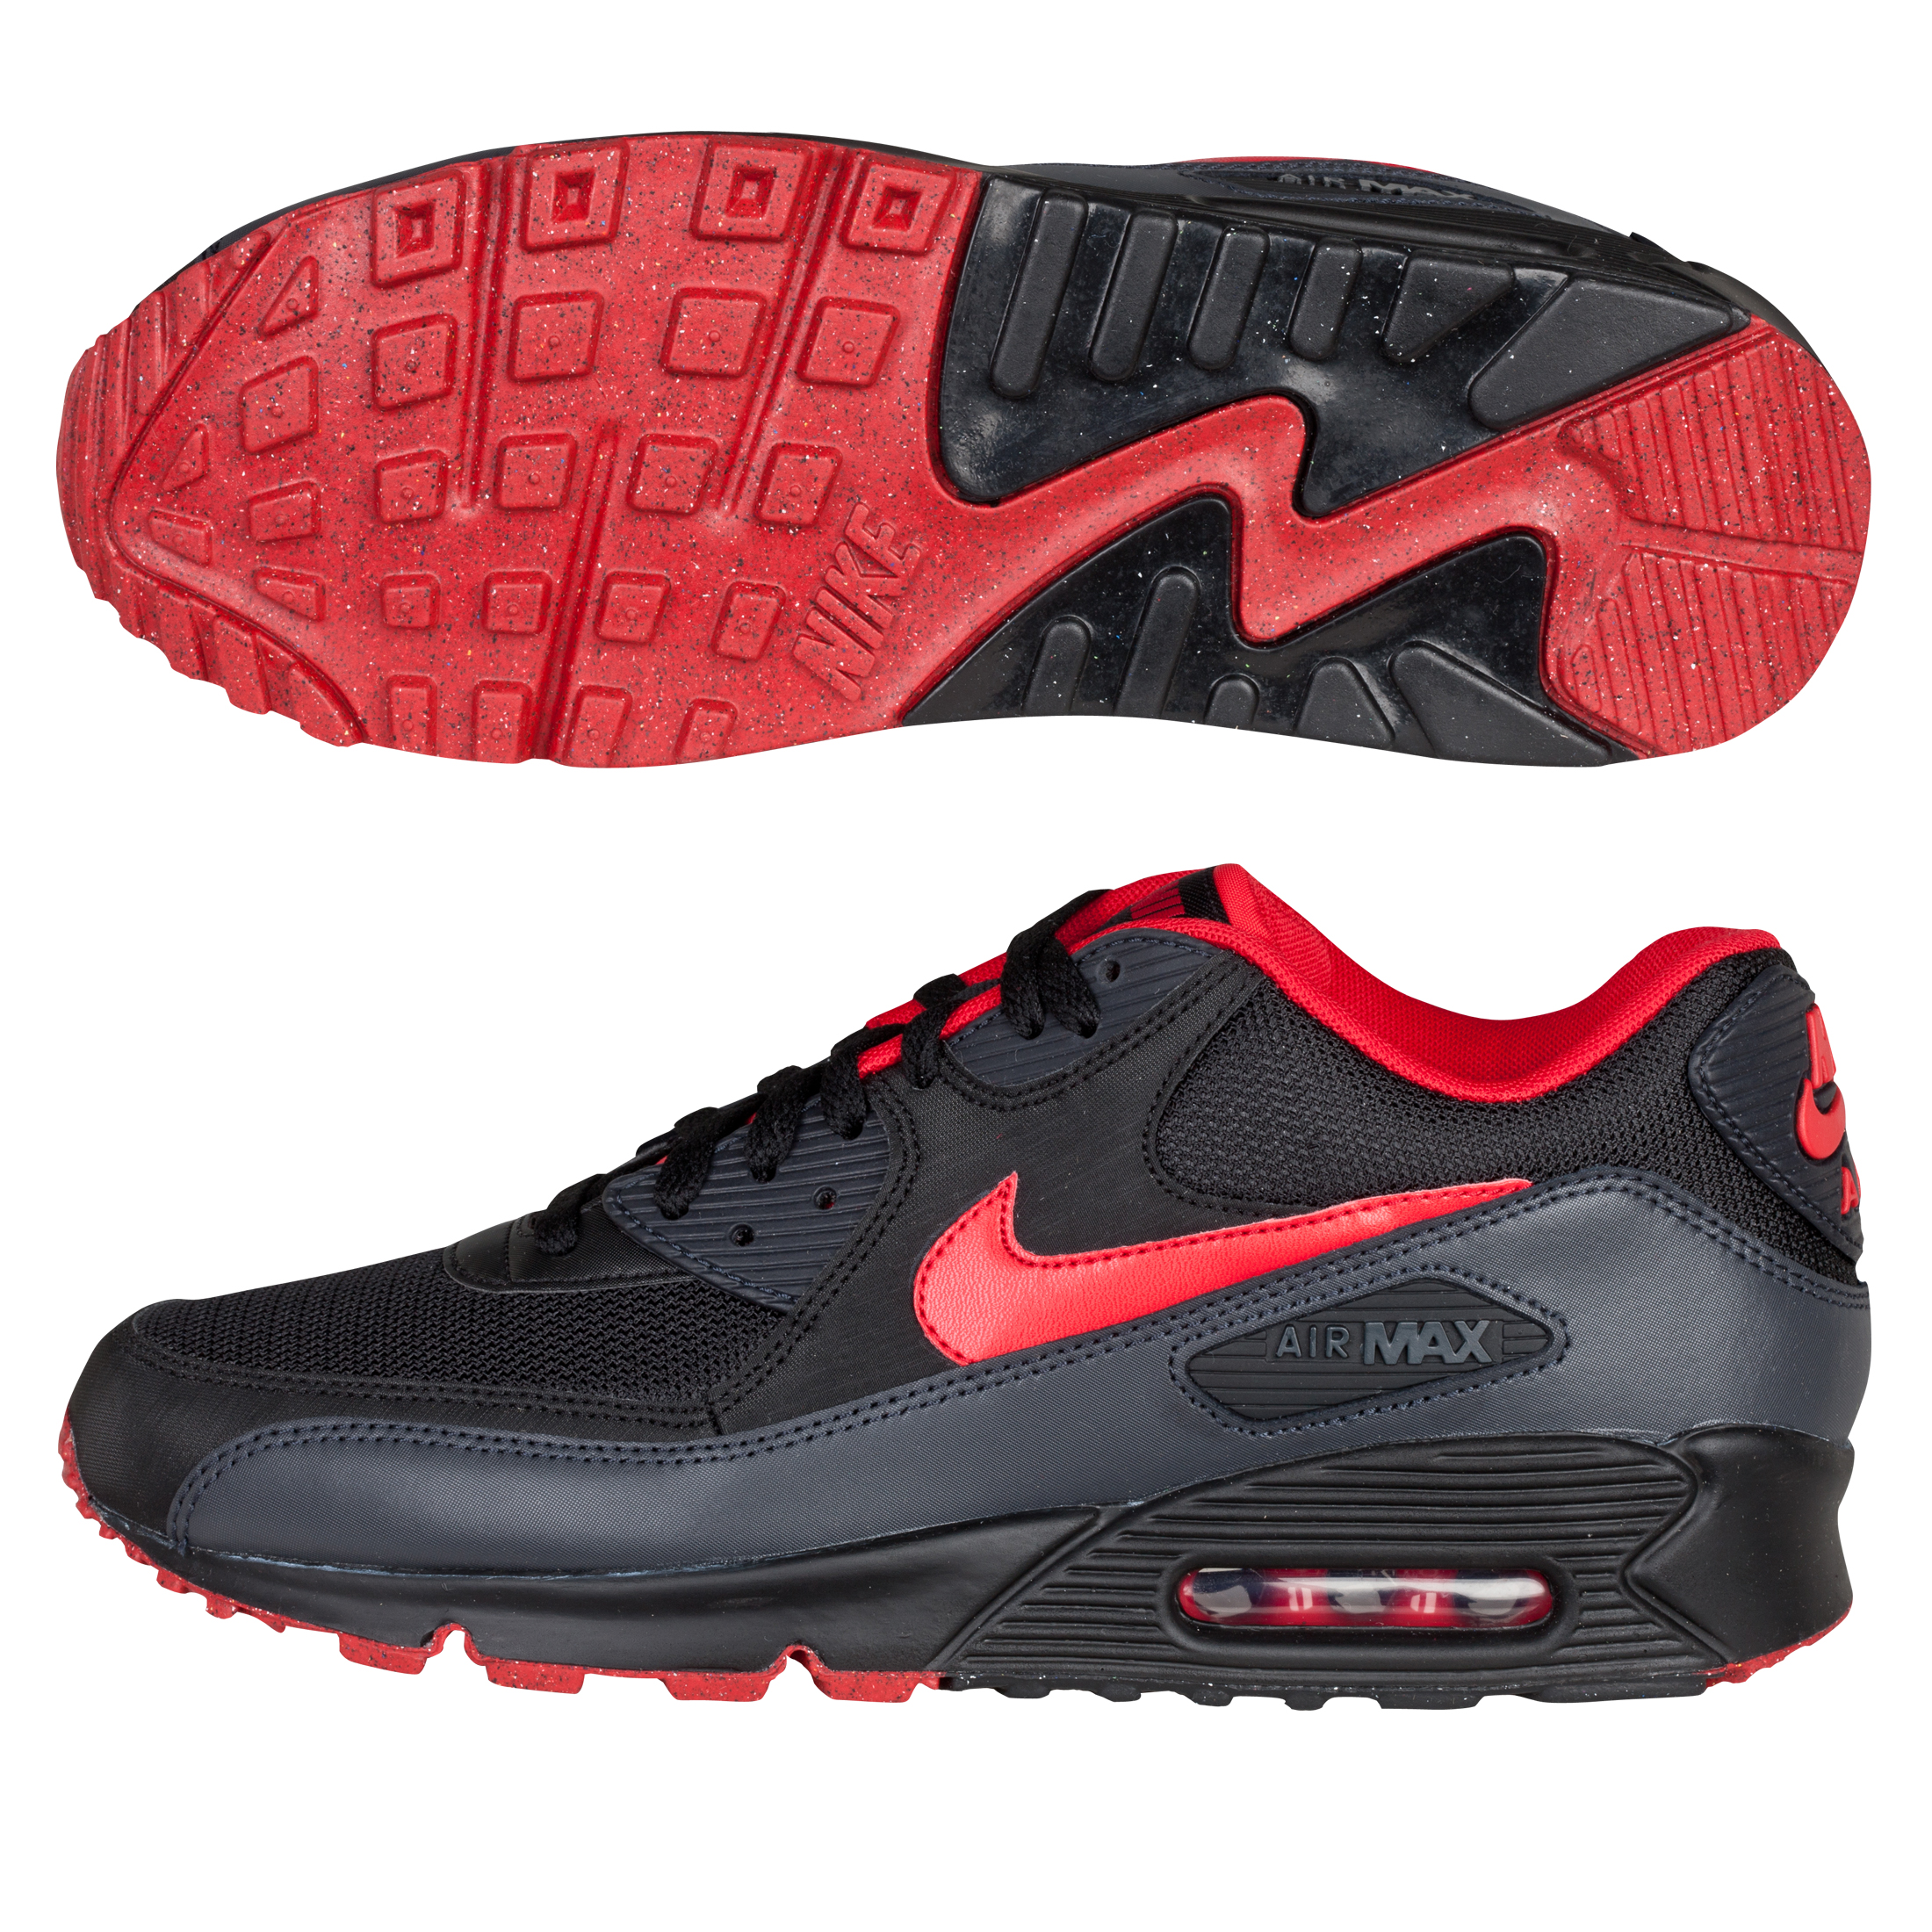 Nike Air Max 90 '08 Trainers - Black/University Red/Anthracite/Natural Grey